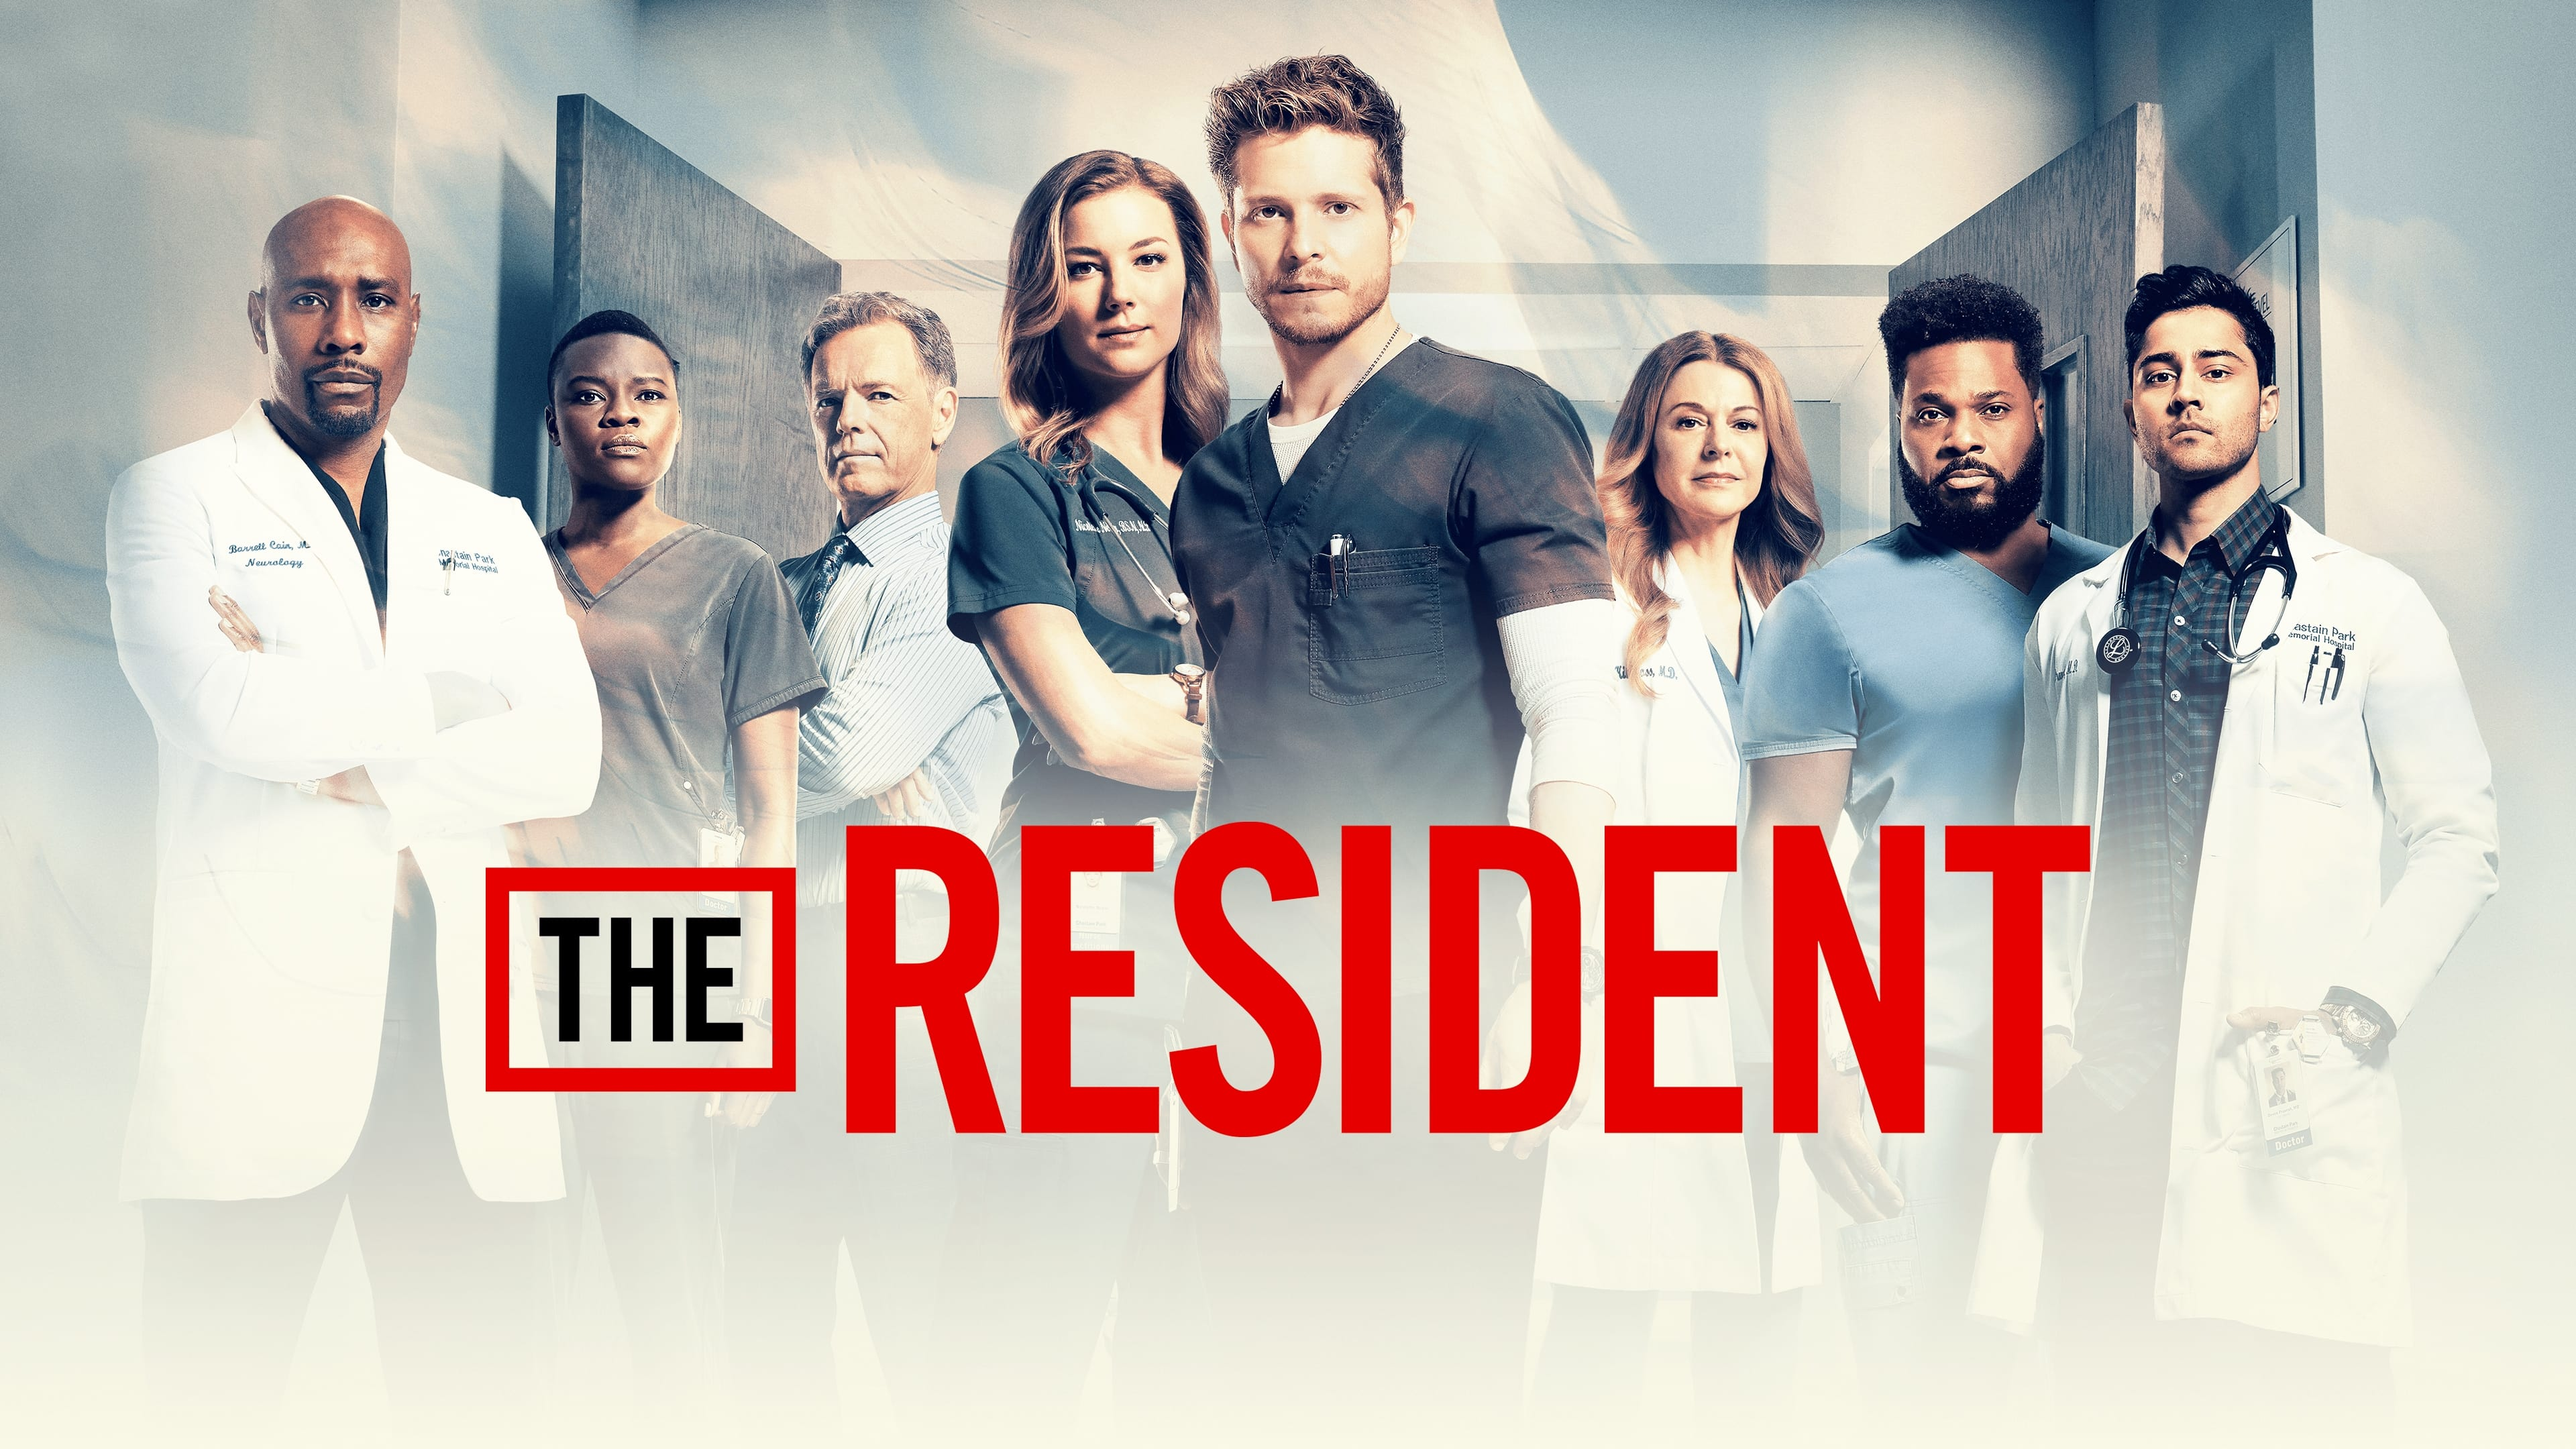 The Resident-poster-2